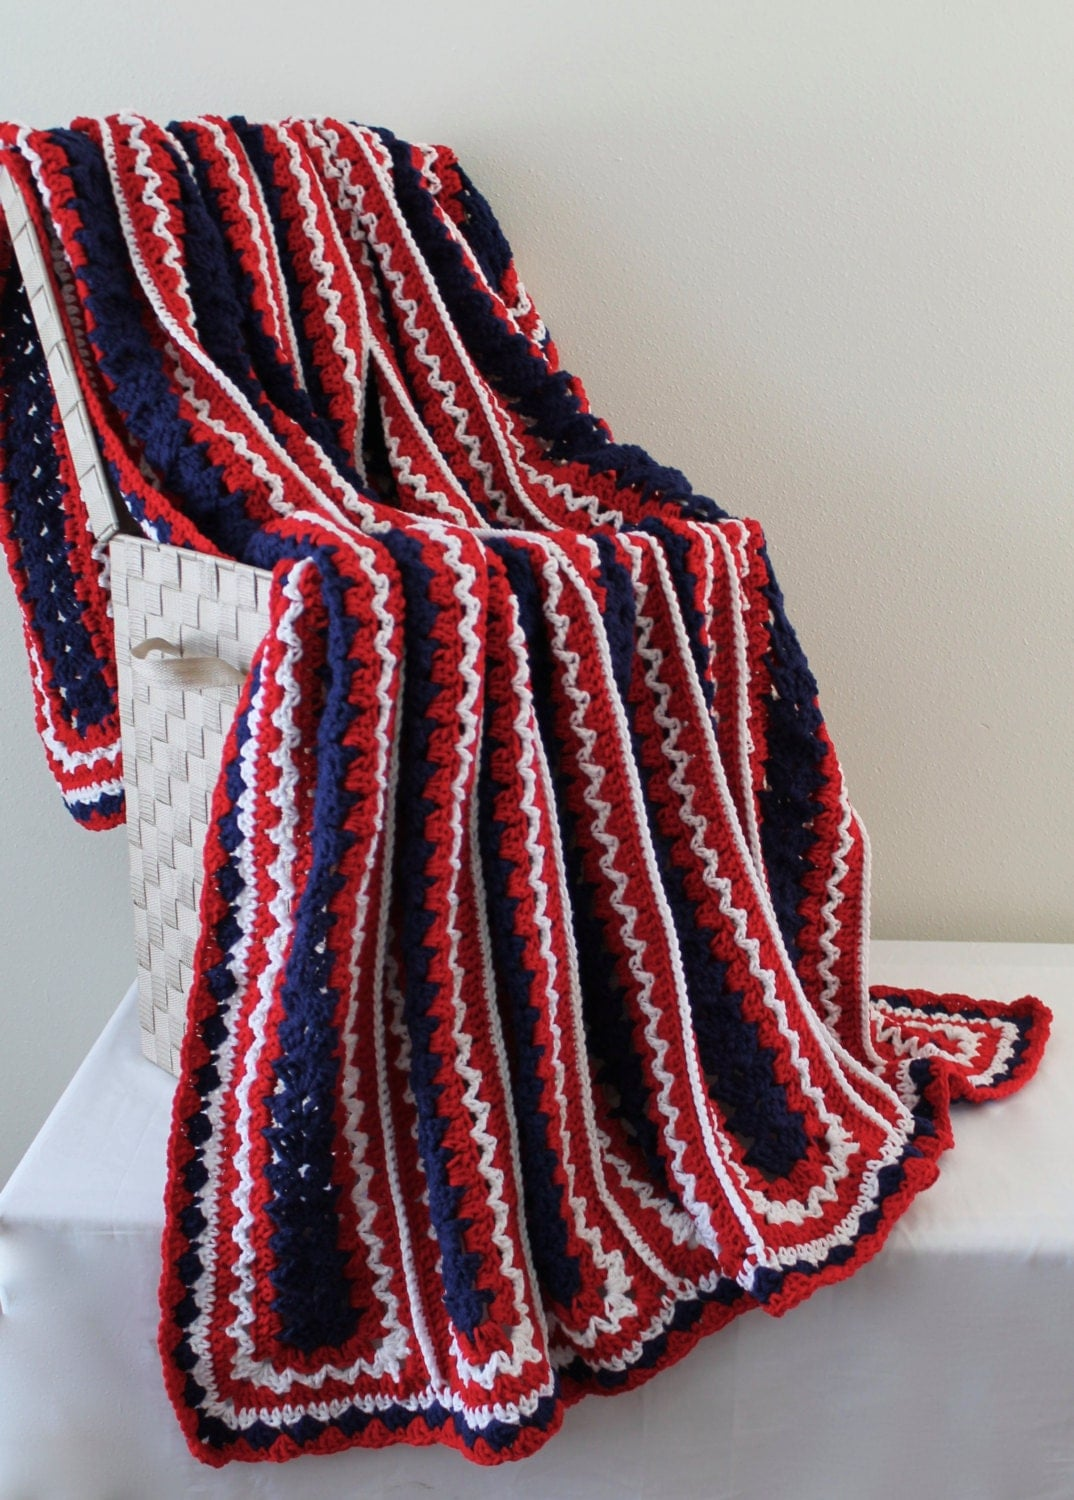 Afghan Handmade Crochet Queen Size Blanket Red White and